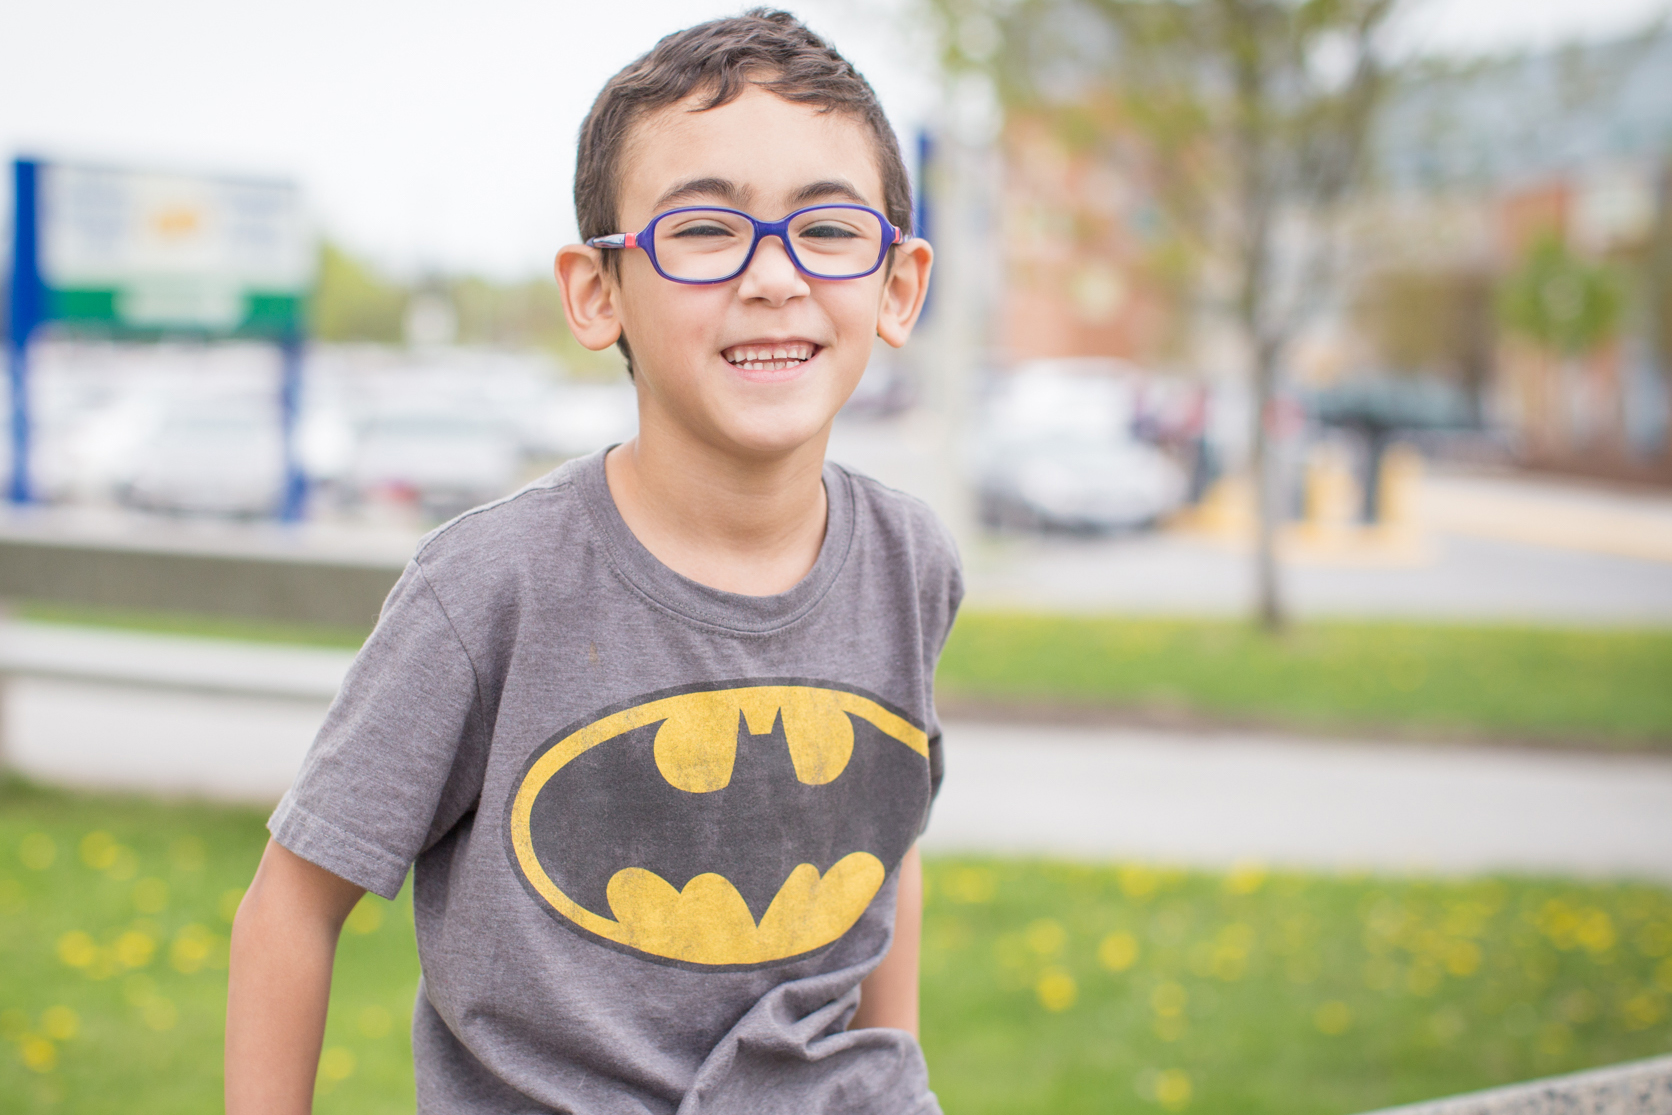 Child affected by Crohn's disease